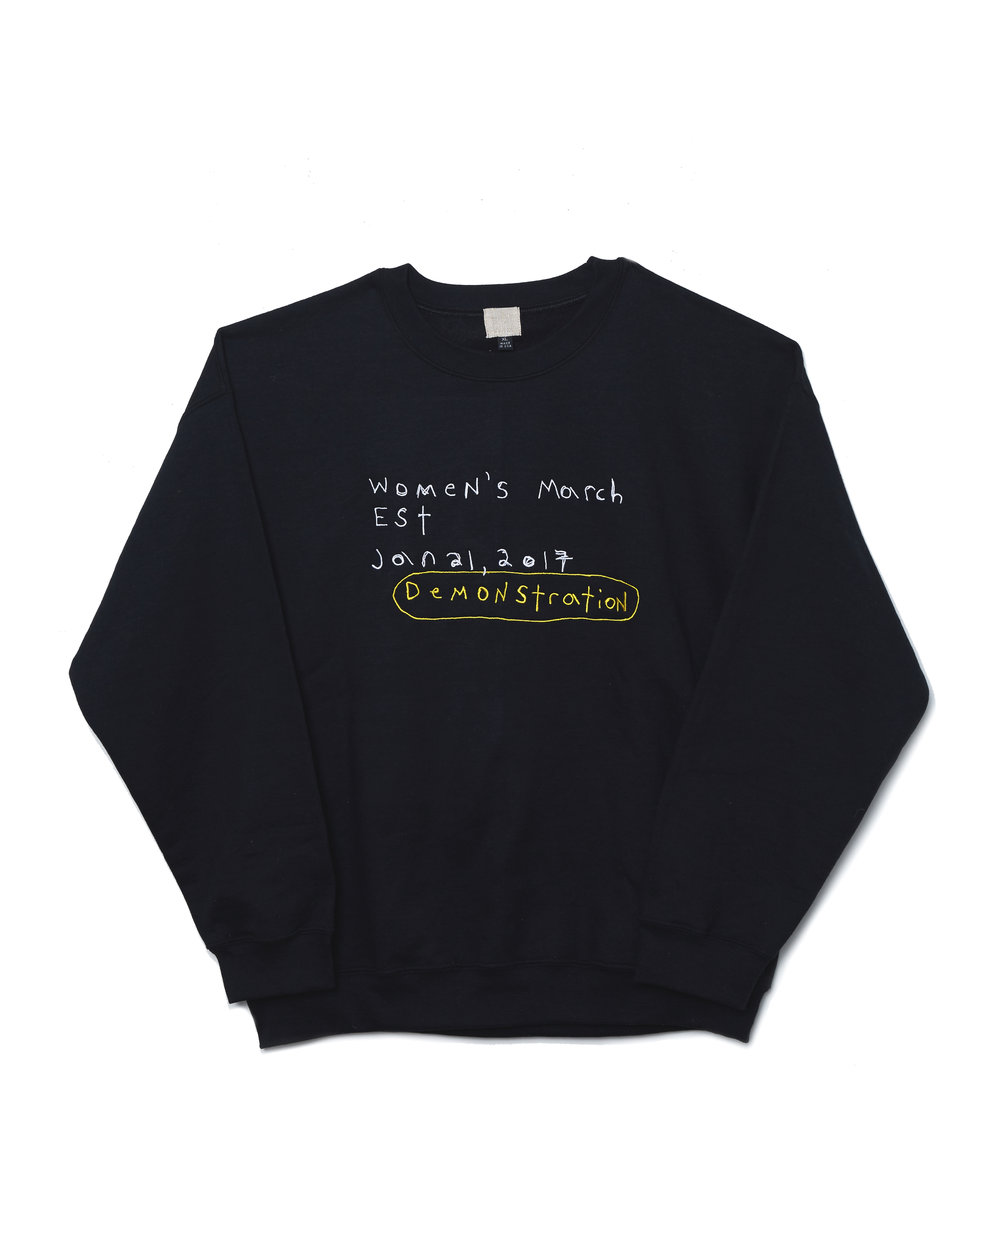 Brother Vellies – Sweatshirt, Black